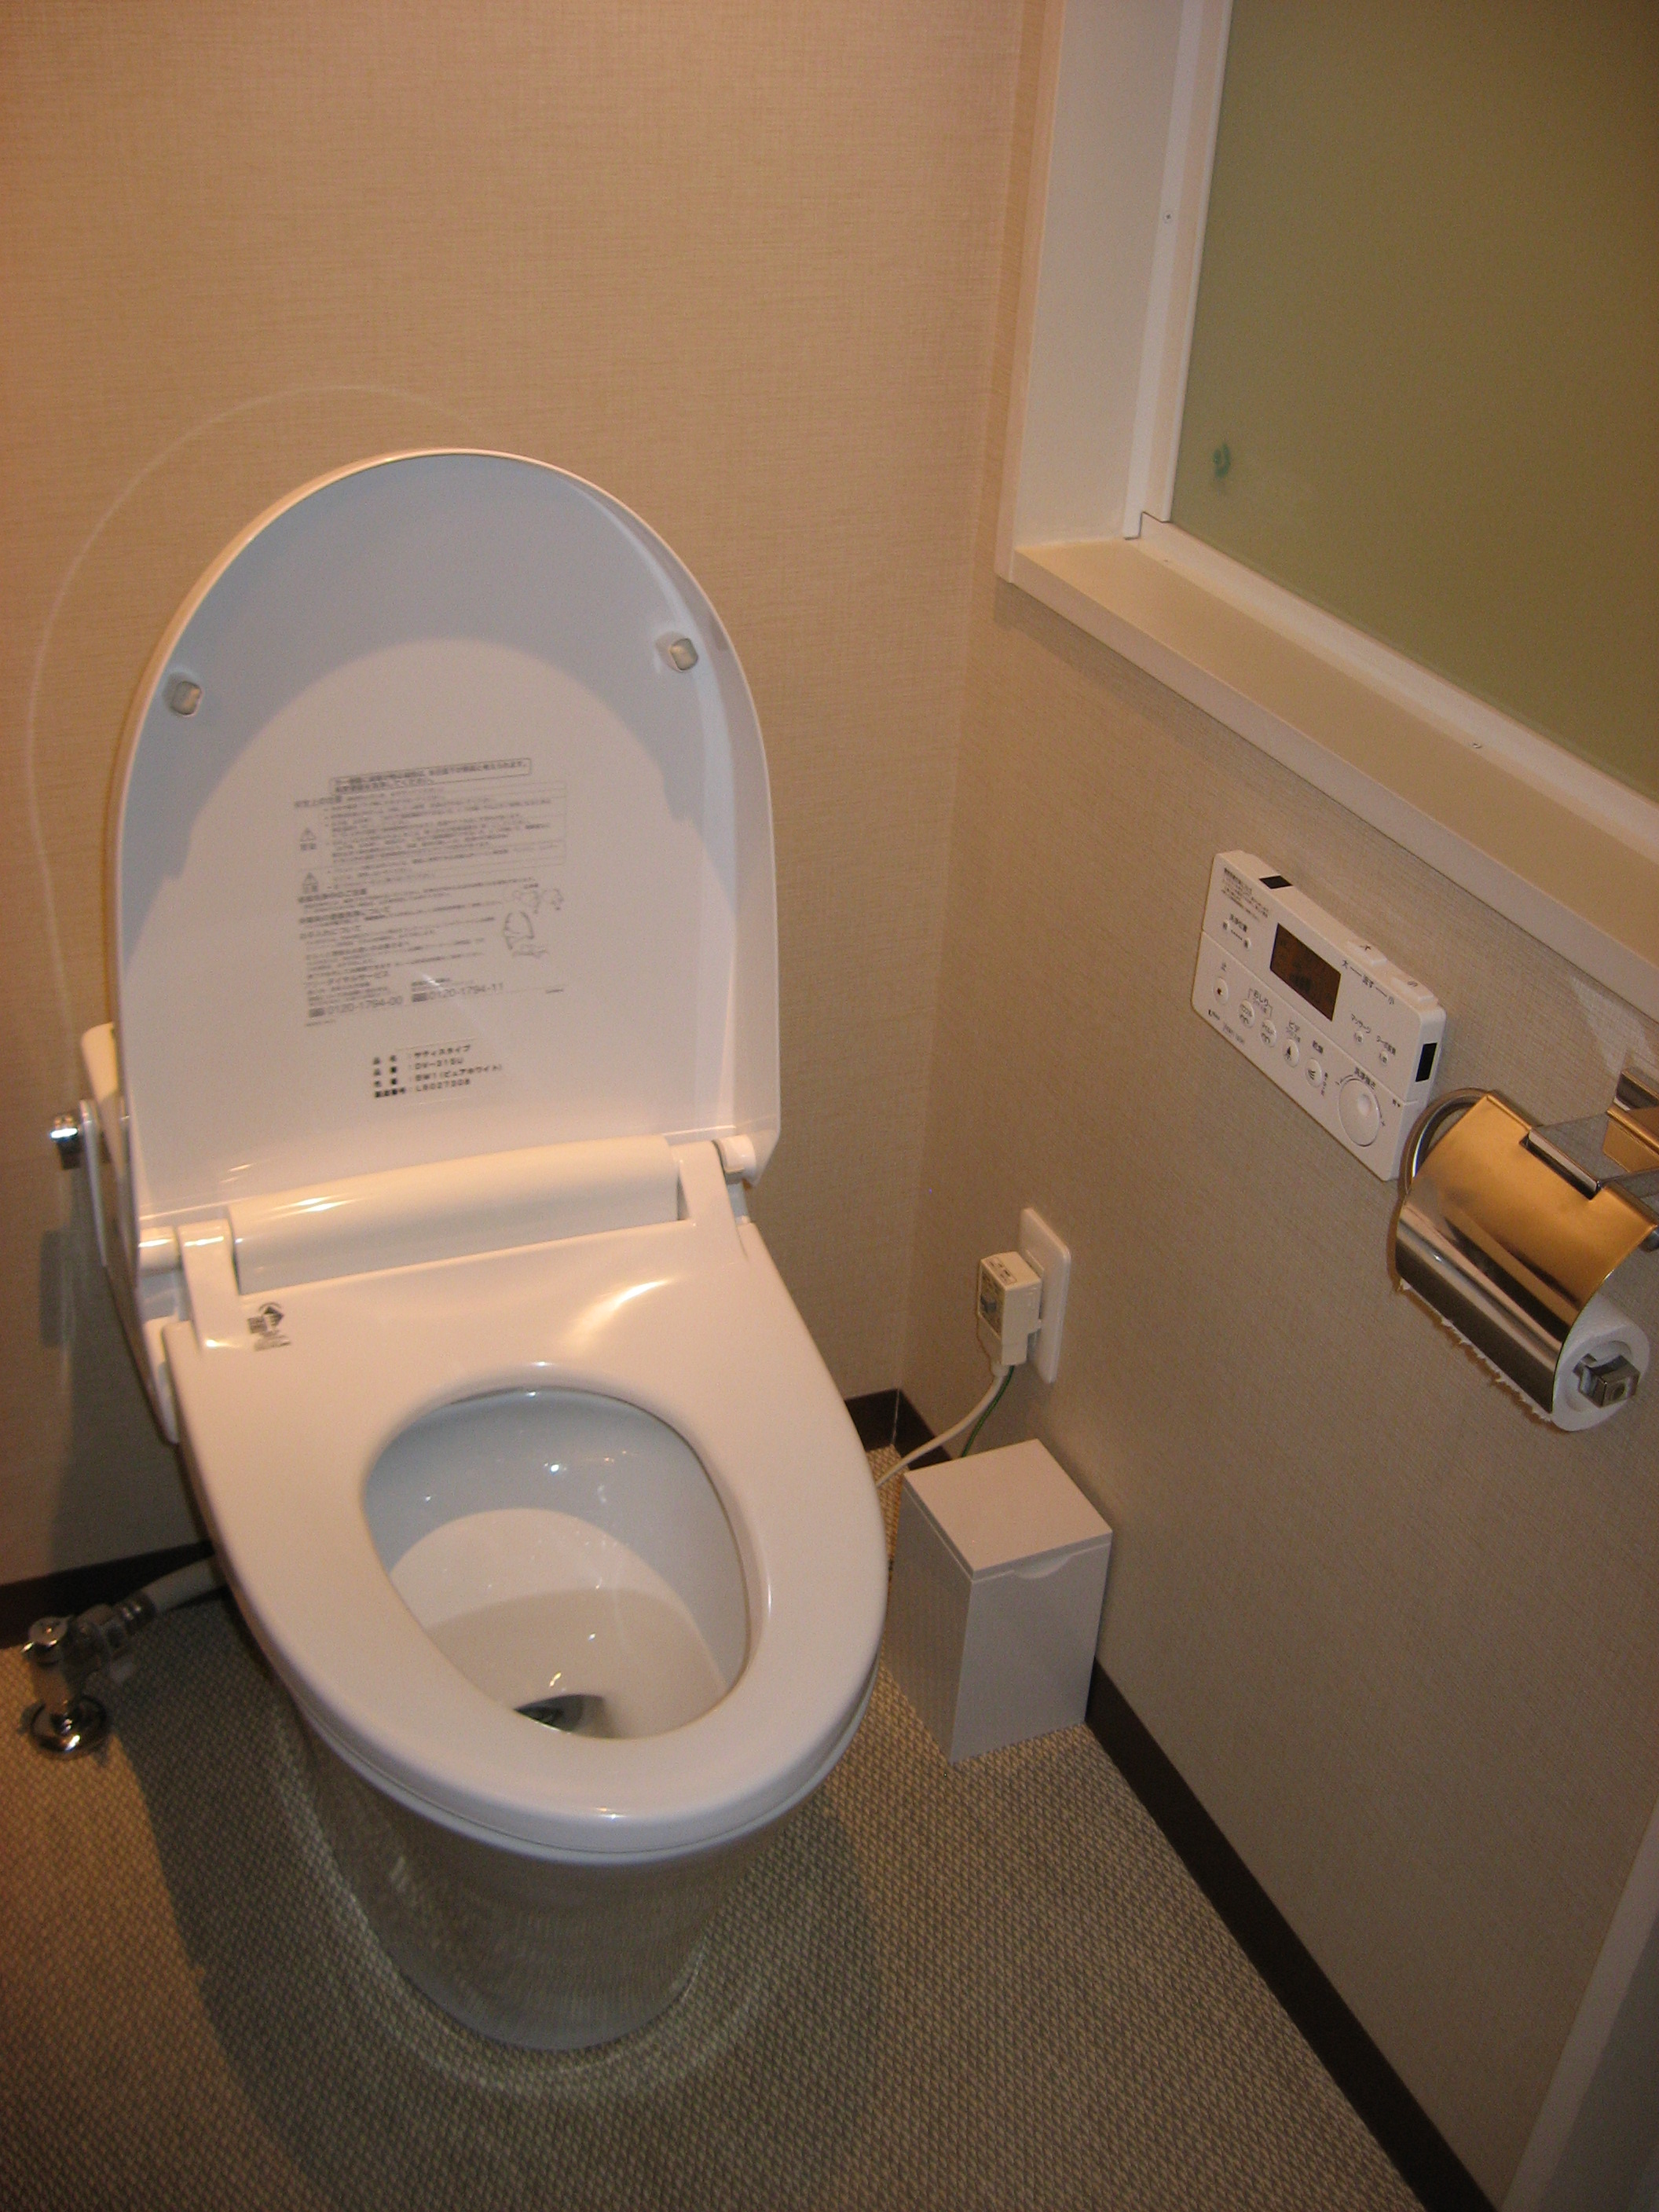 The other Japanese toilet | The Japans